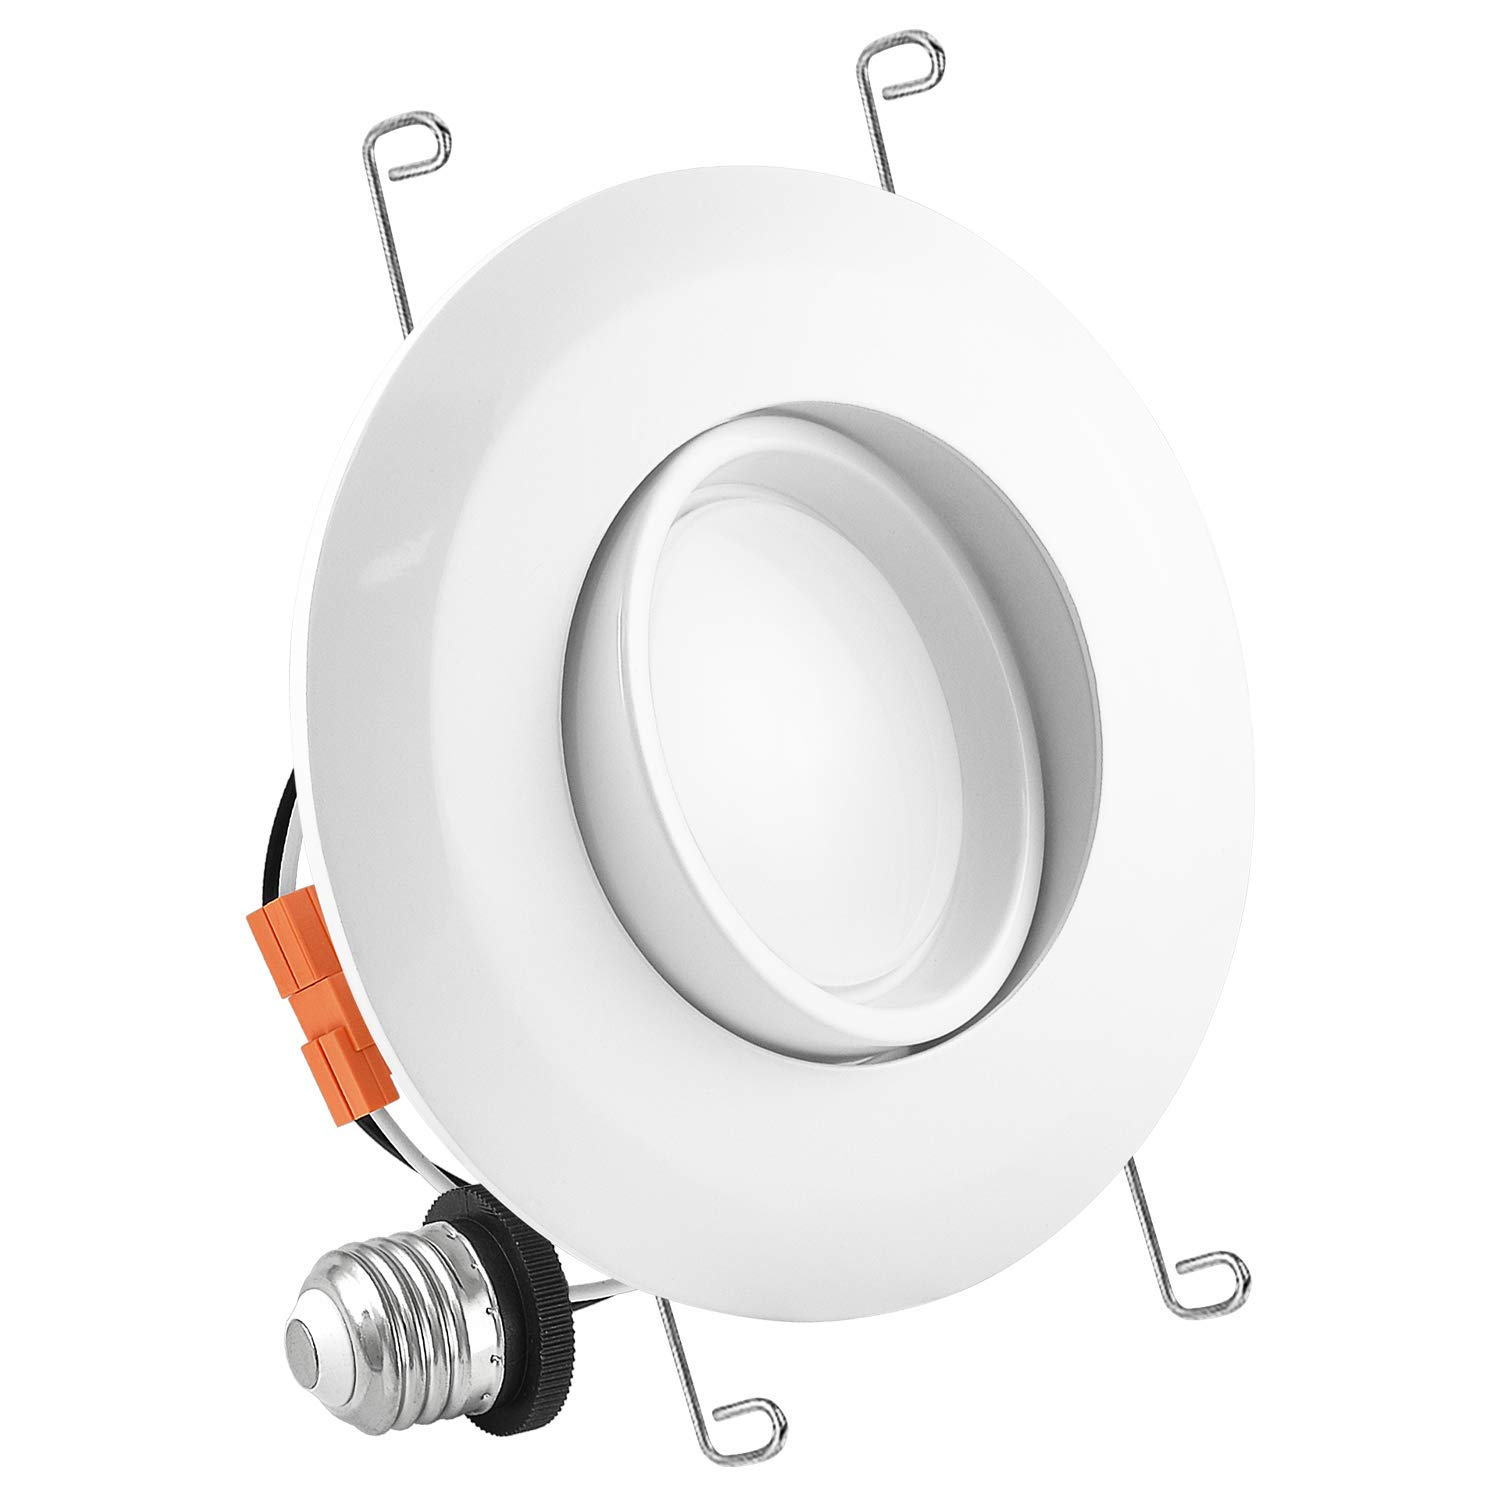 Luxrite 5/6 Inch Gimbal LED Recessed Light, 15W, 5000K Bright White, Dimmable LED Downlight, 1060 Lumens, Energy Star & ETL Listed, CRI 90, Damp Location - Adjustable Recessed Lighting